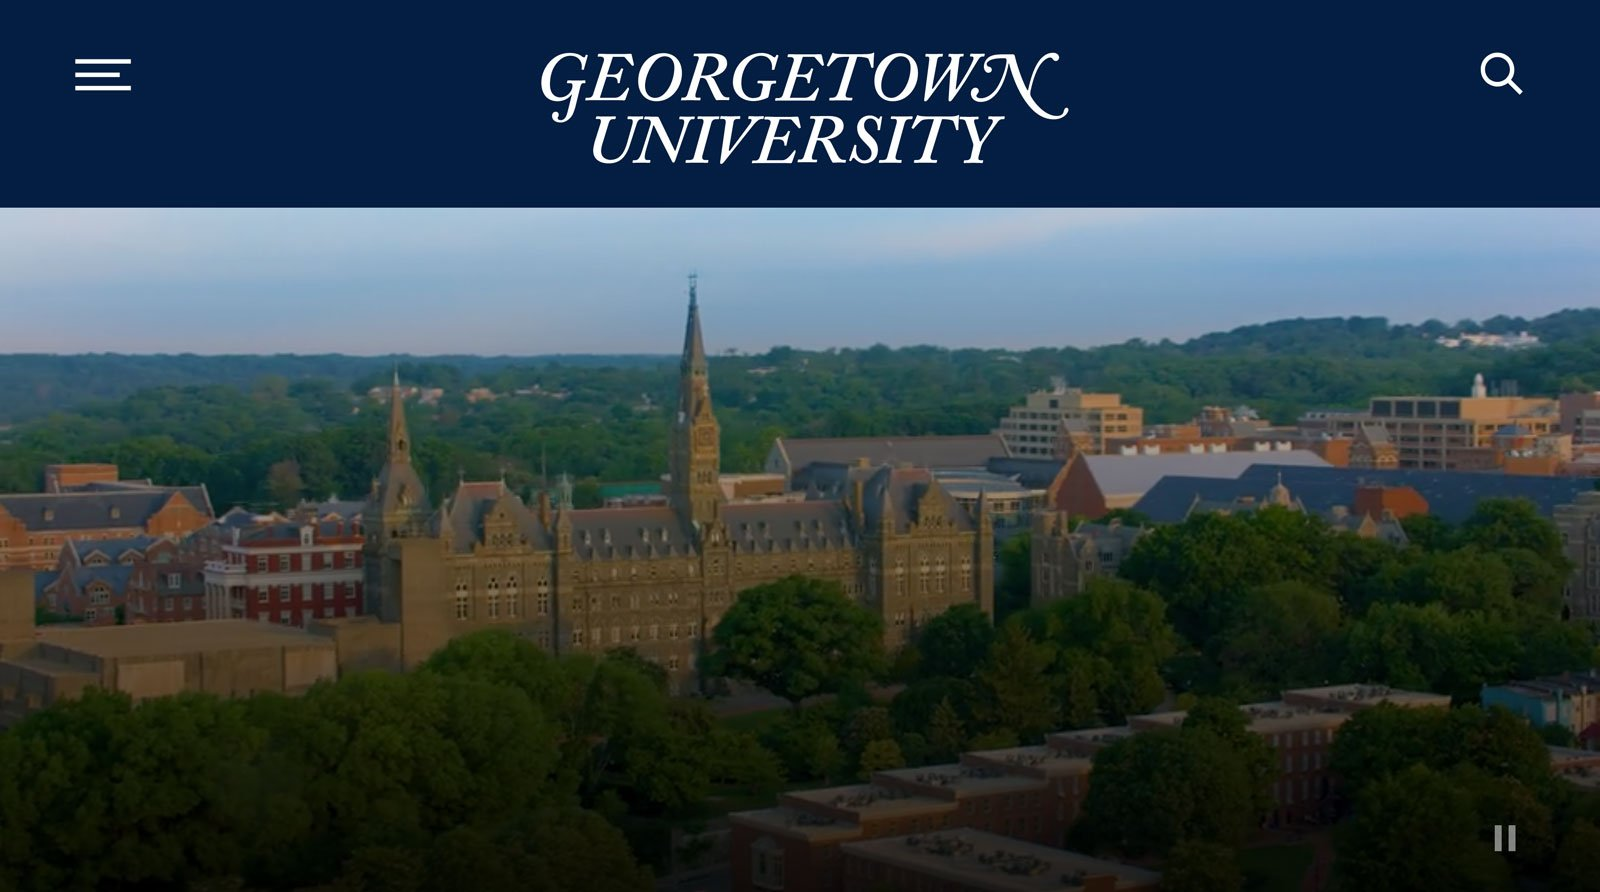 Tease image for Georgetown University